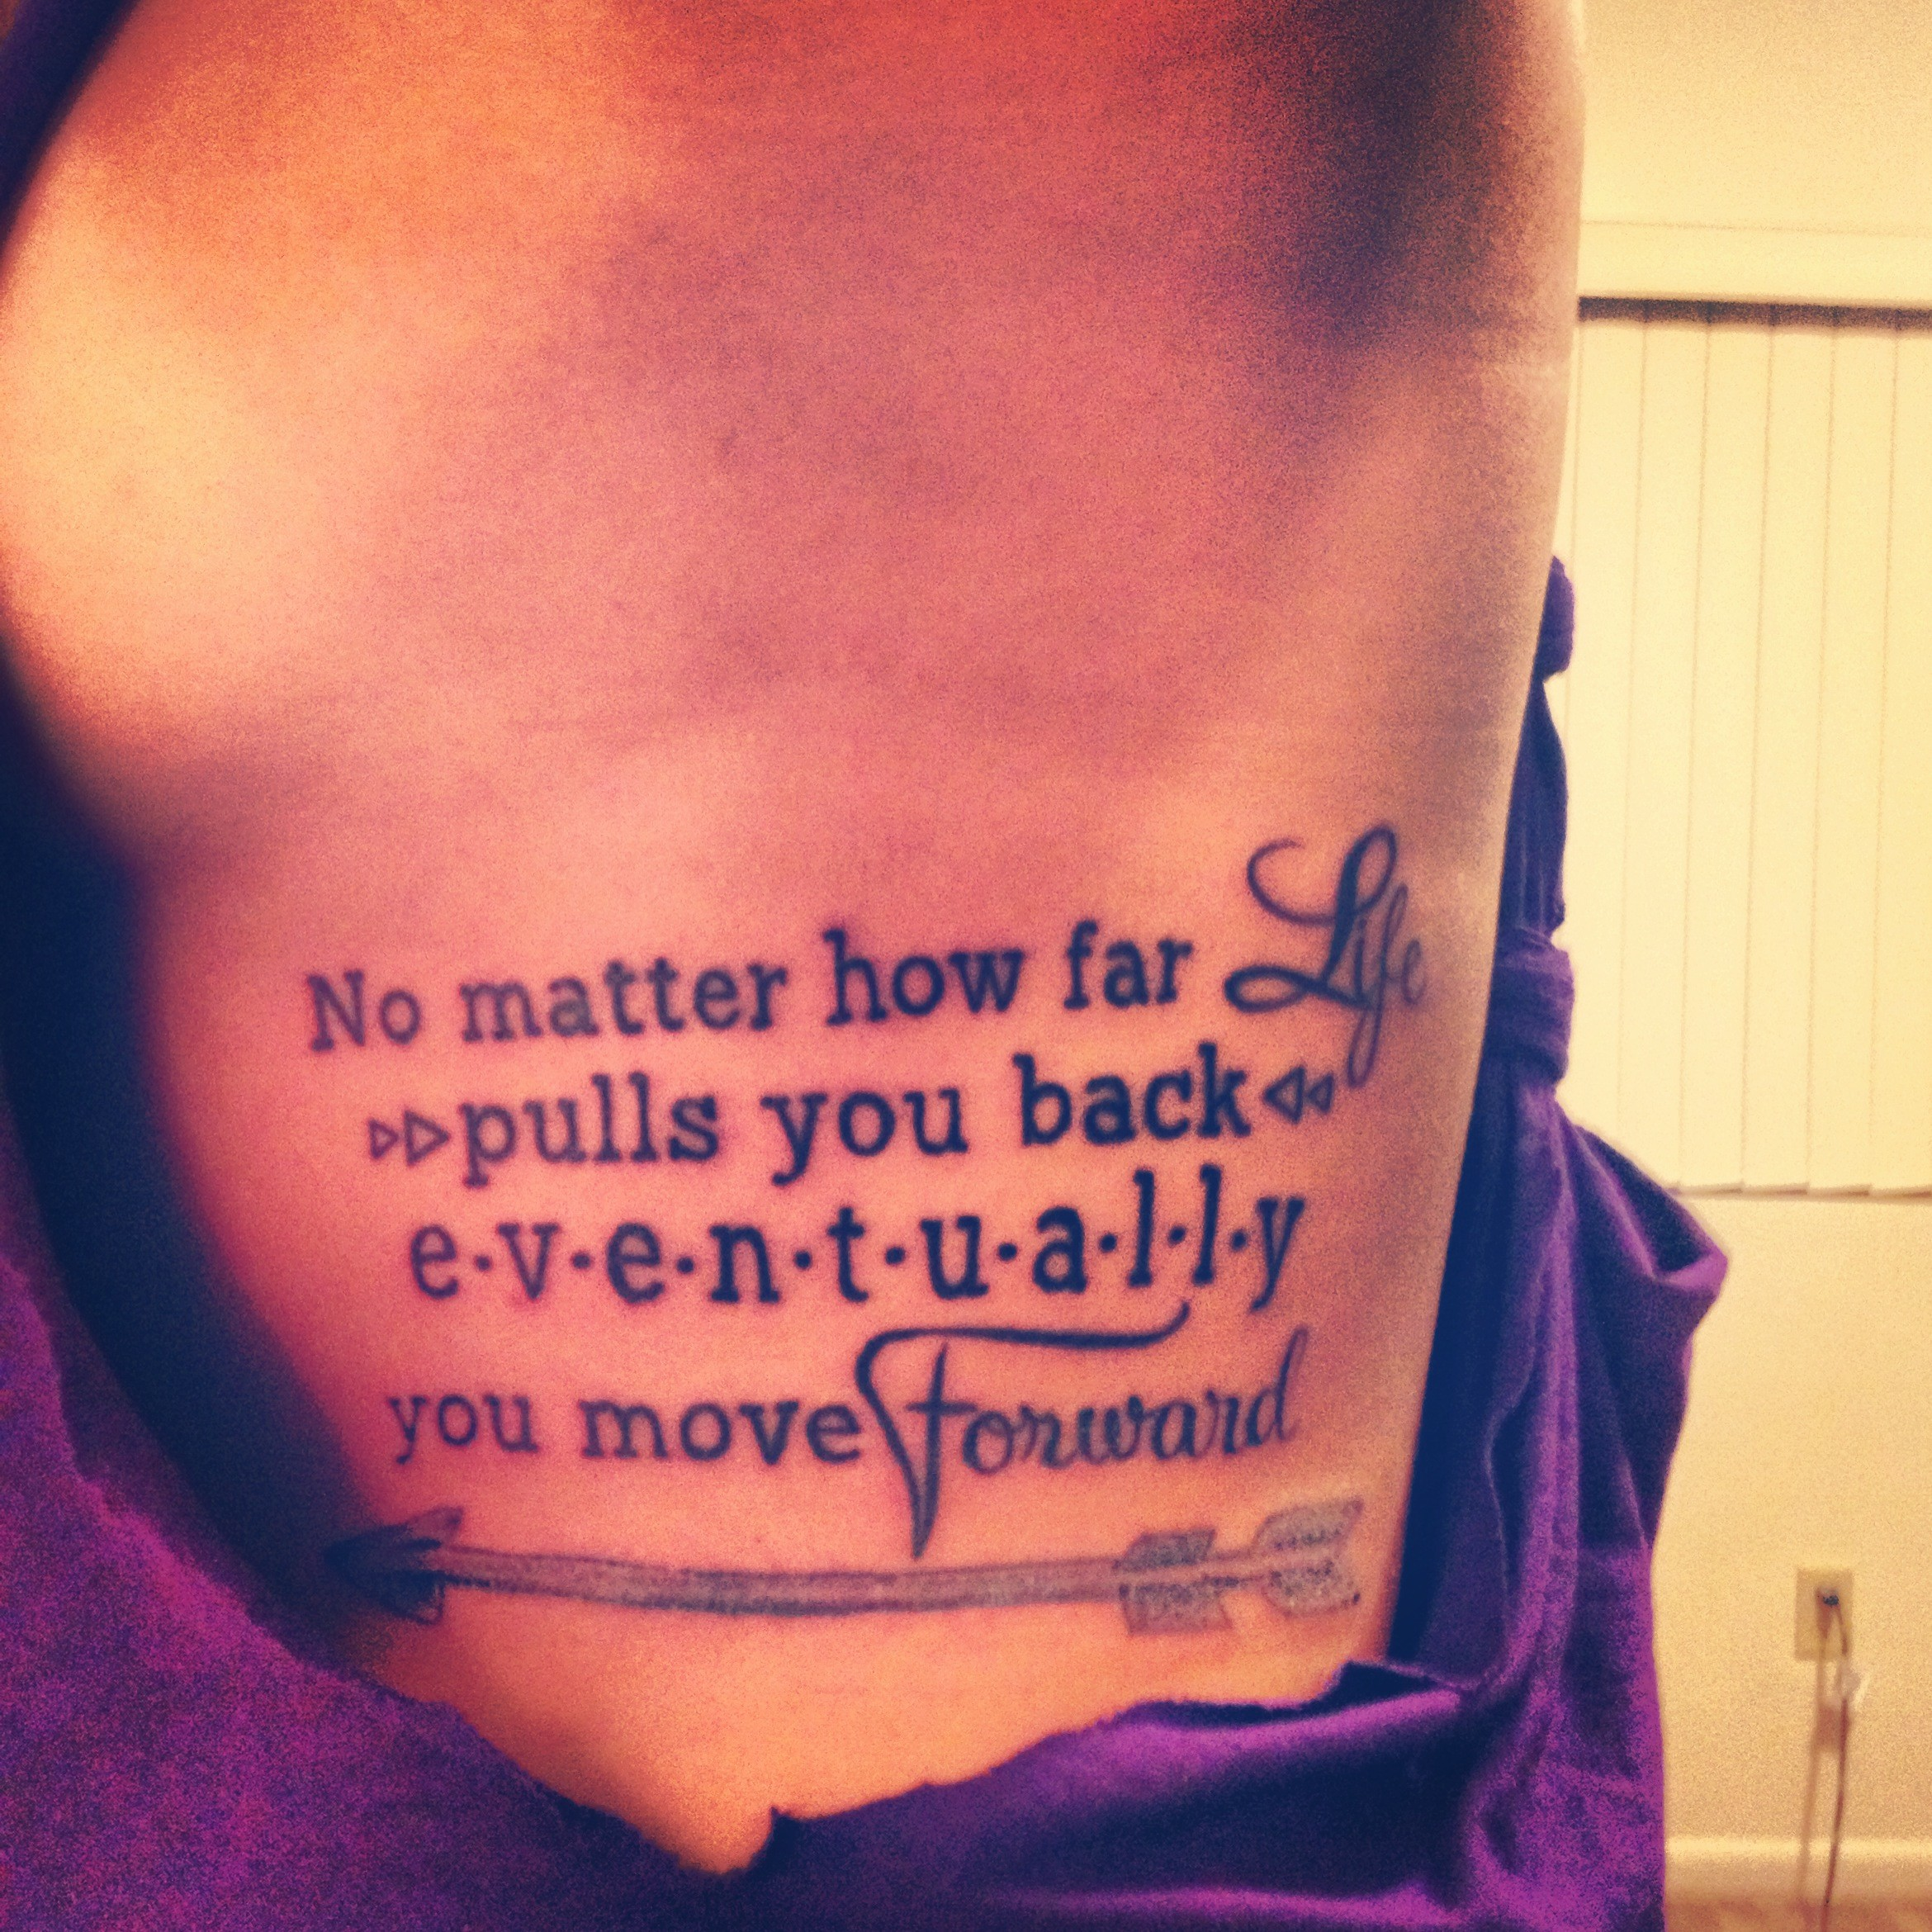 Tattoo Ideas For Women With Meaning Quotes Quotesgram: Quotes For Girls Side Tattoos. QuotesGram